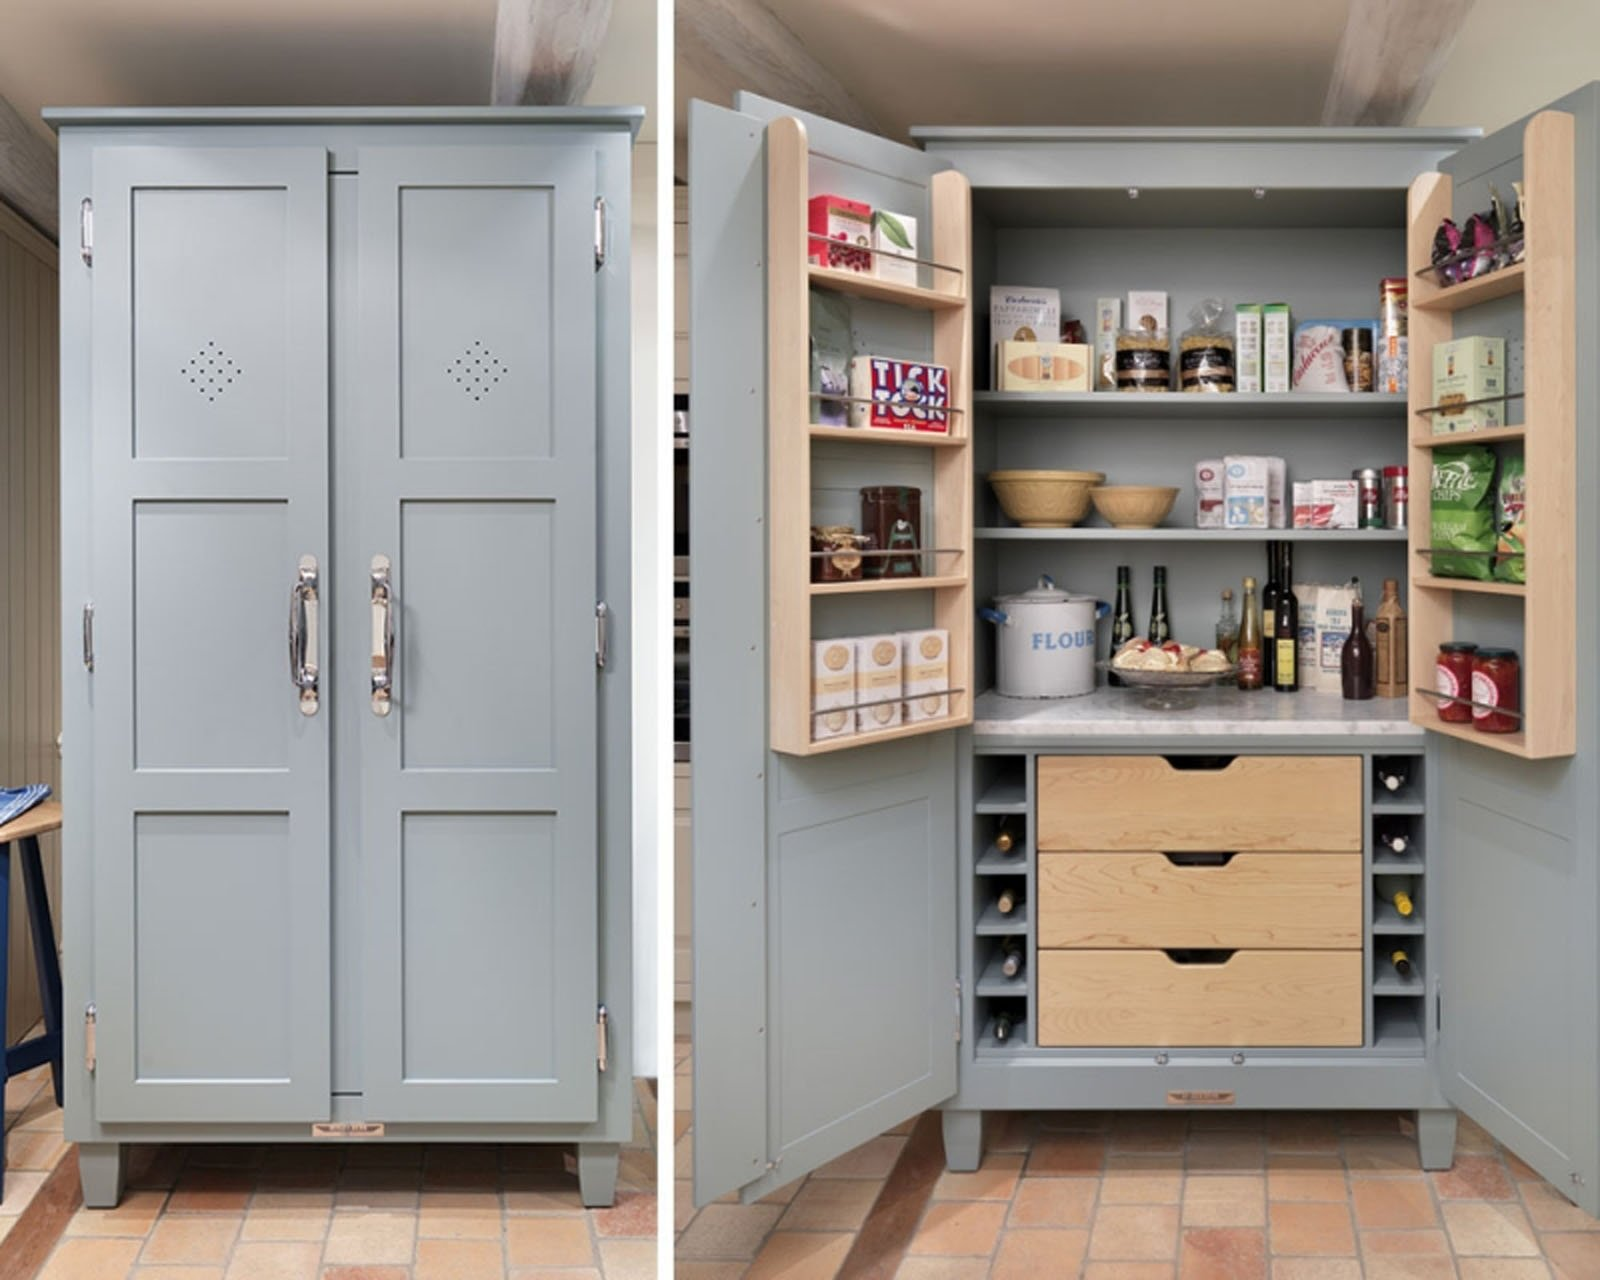 10 Wonderful Pantry Ideas For Small Kitchen magnificent pantry to small kitchen ideas addingteresting decoration 2020